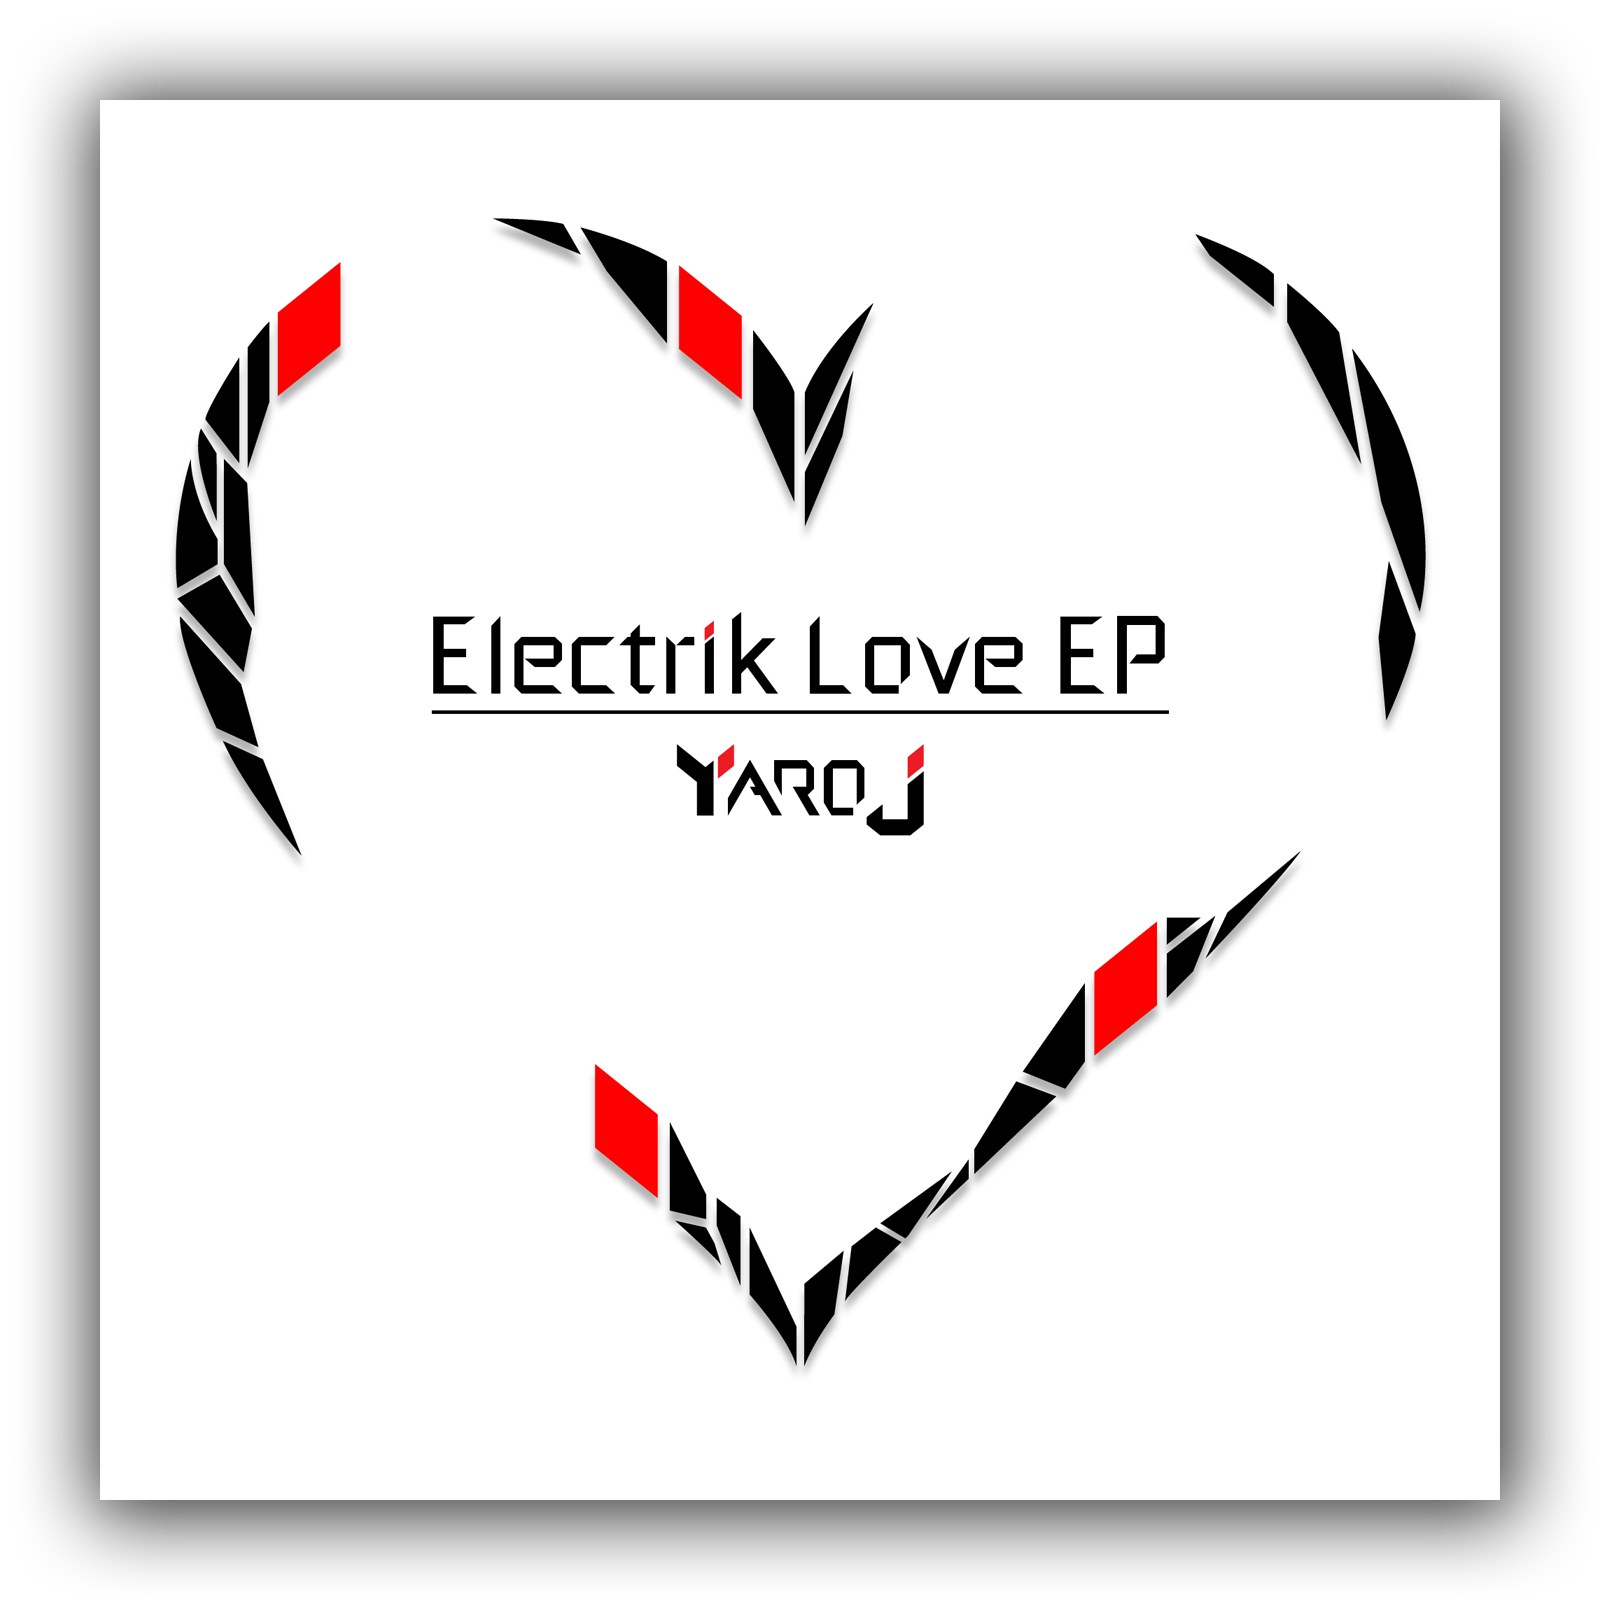 Electrik Love EP by Yaro J